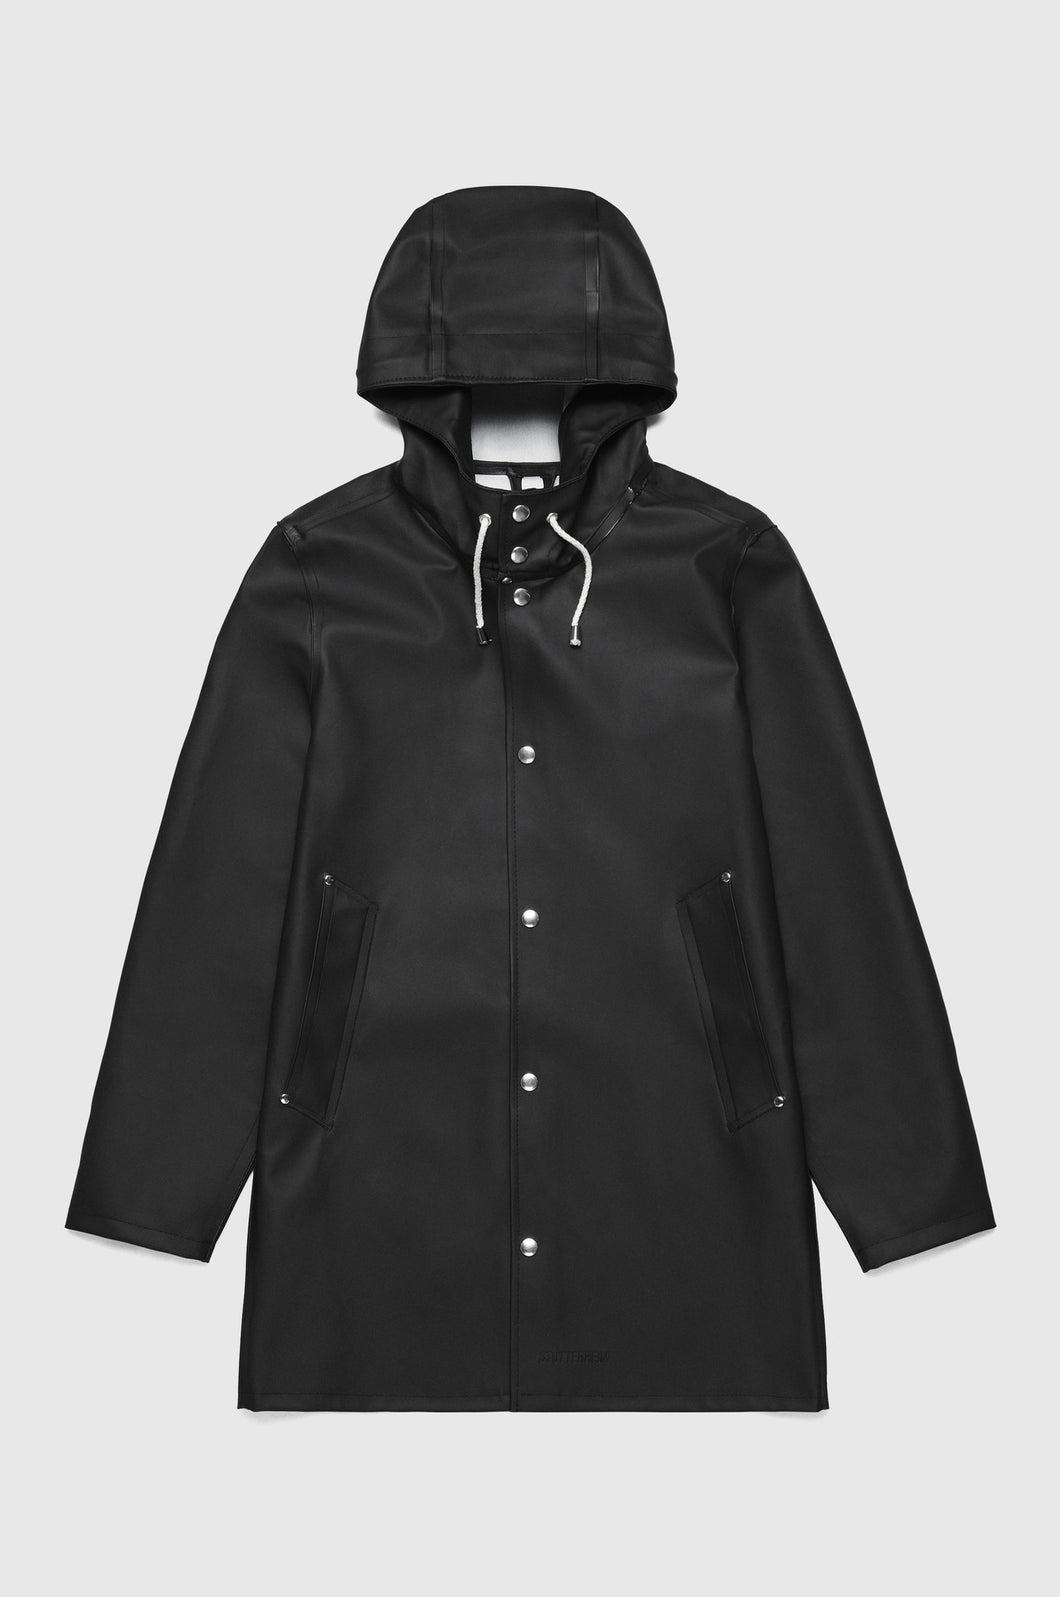 Stockholm Raincoat- Black